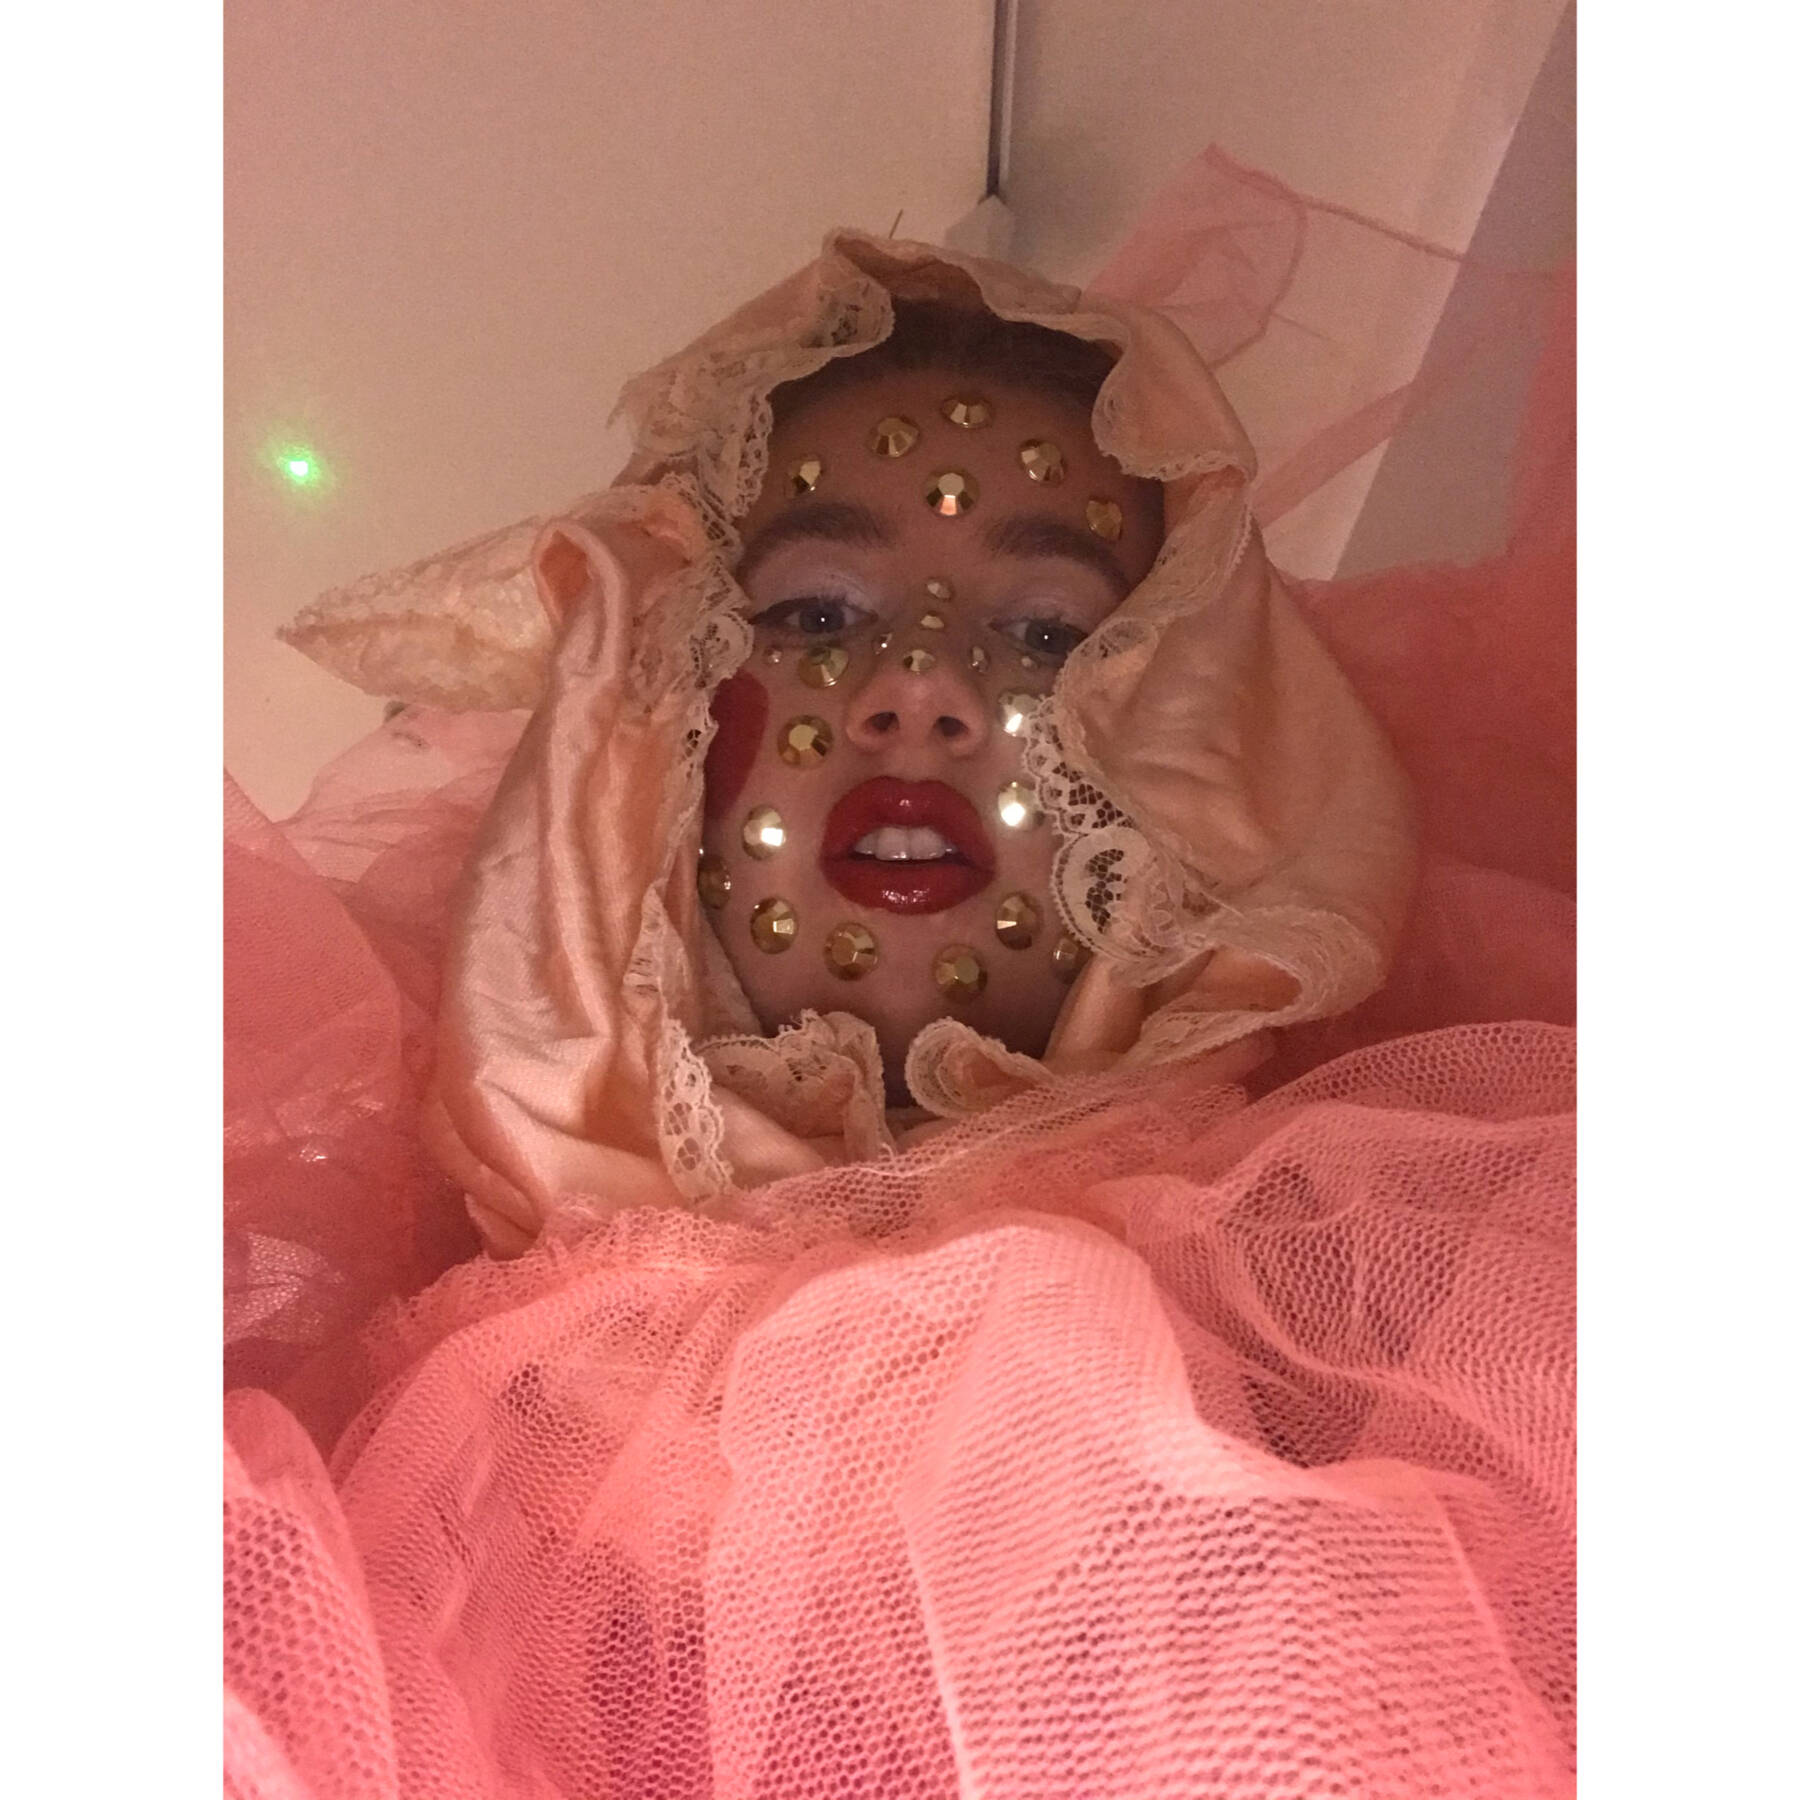 Moina wrapped in pink fabrics with gold sequins stuck all over her face.